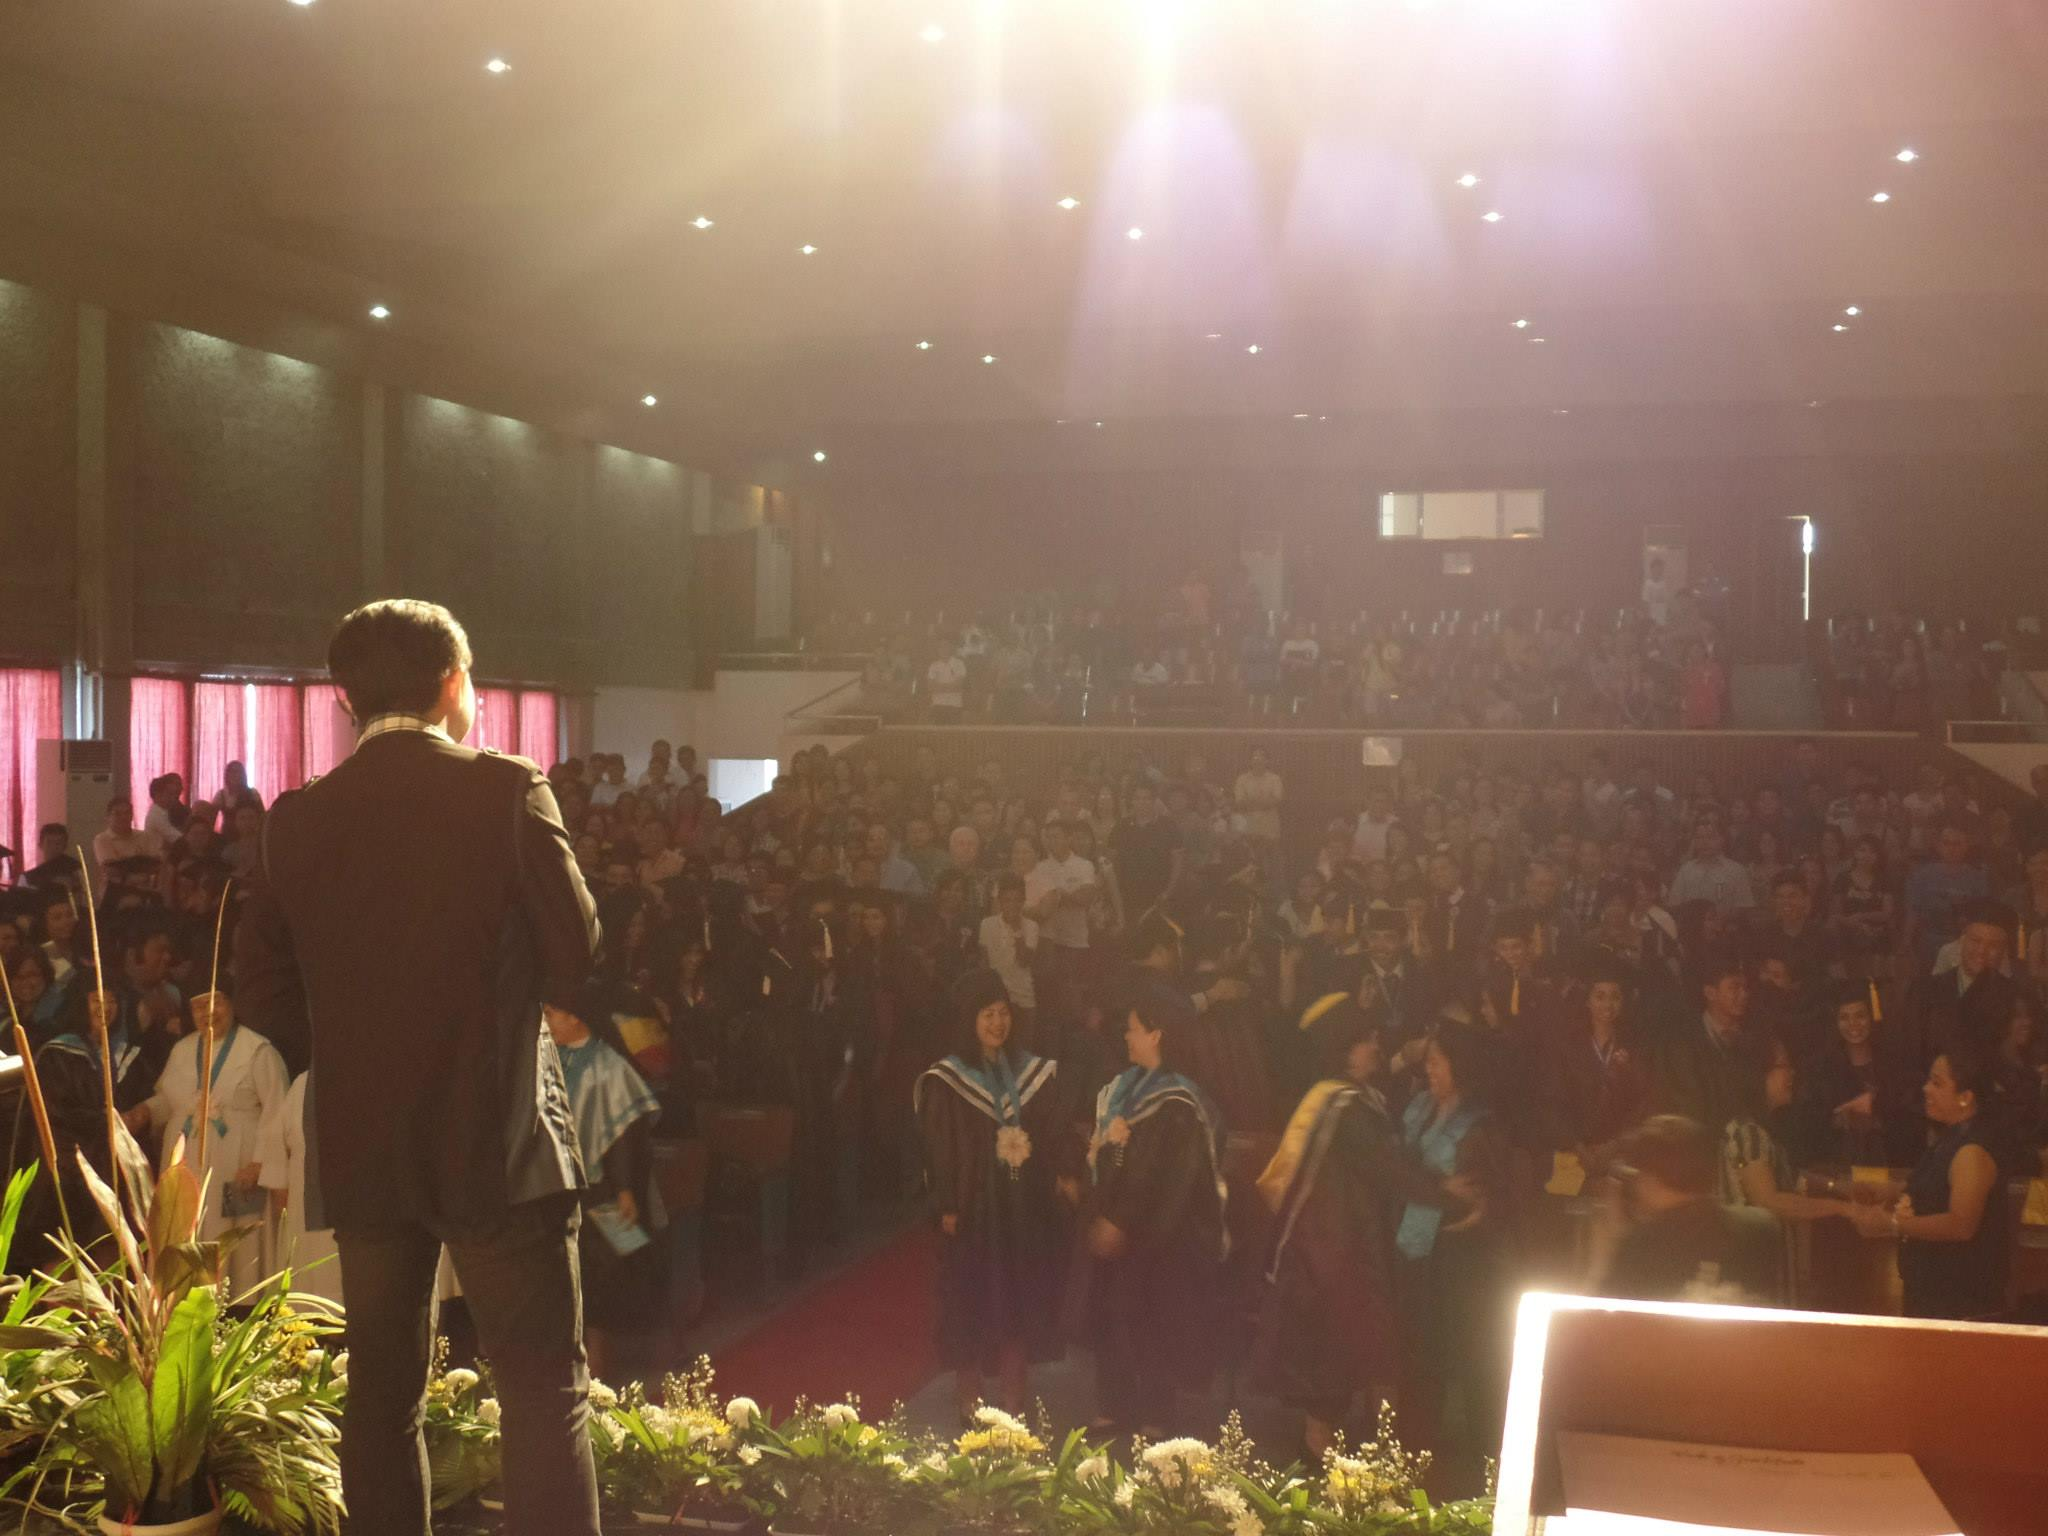 The VoiceMaster as Commencement Speaker